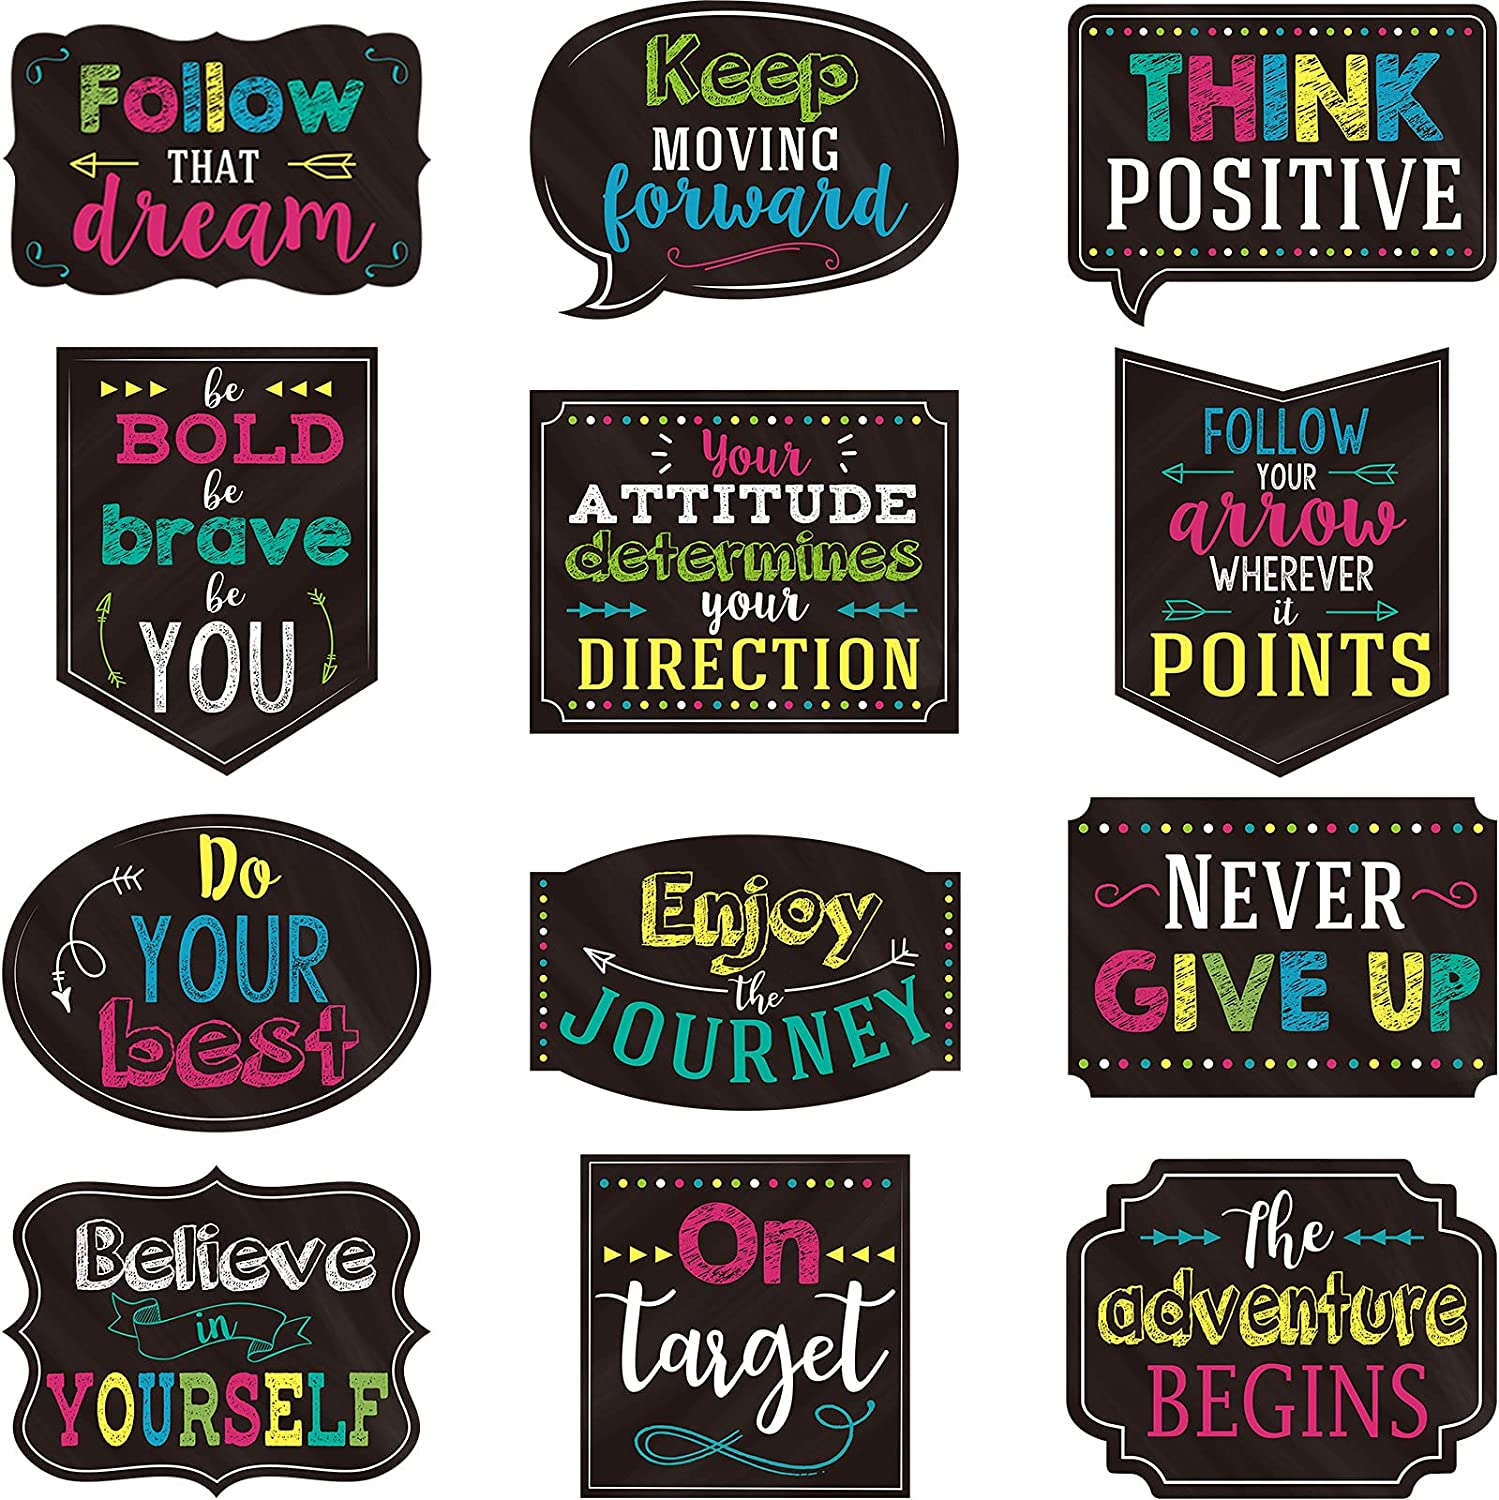 12 Pieces Chalkboard Bright Positive Sayings Motivational Classroom Decor Inspirational Quotes School Wall Art Classroom Positive Quotes Wall Decor with Glue for Home Classroom and Office Decoration